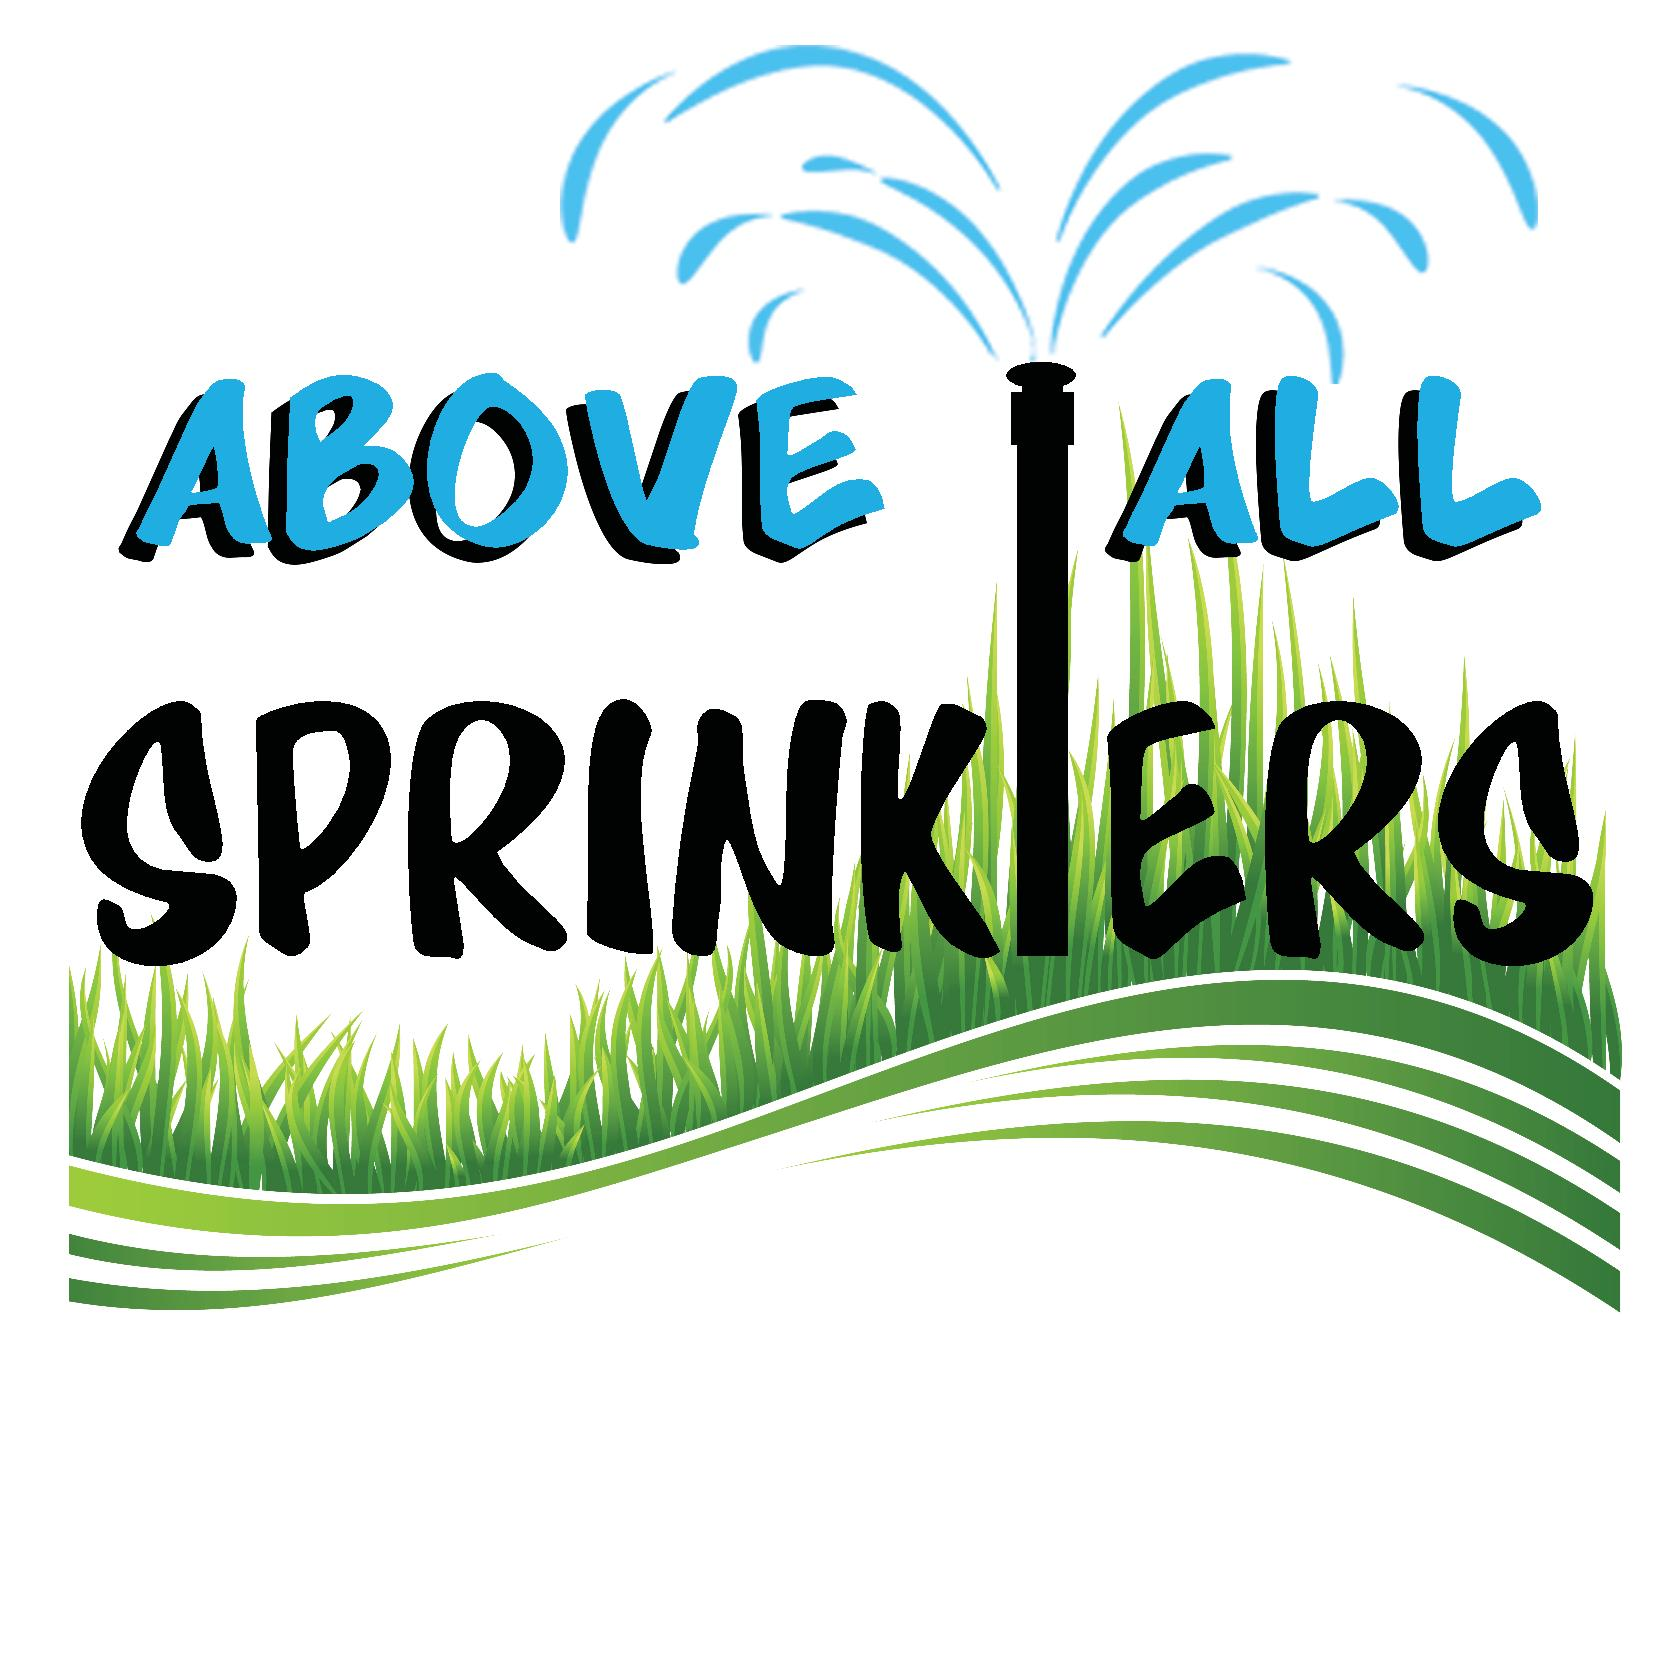 sprkinker service south florida